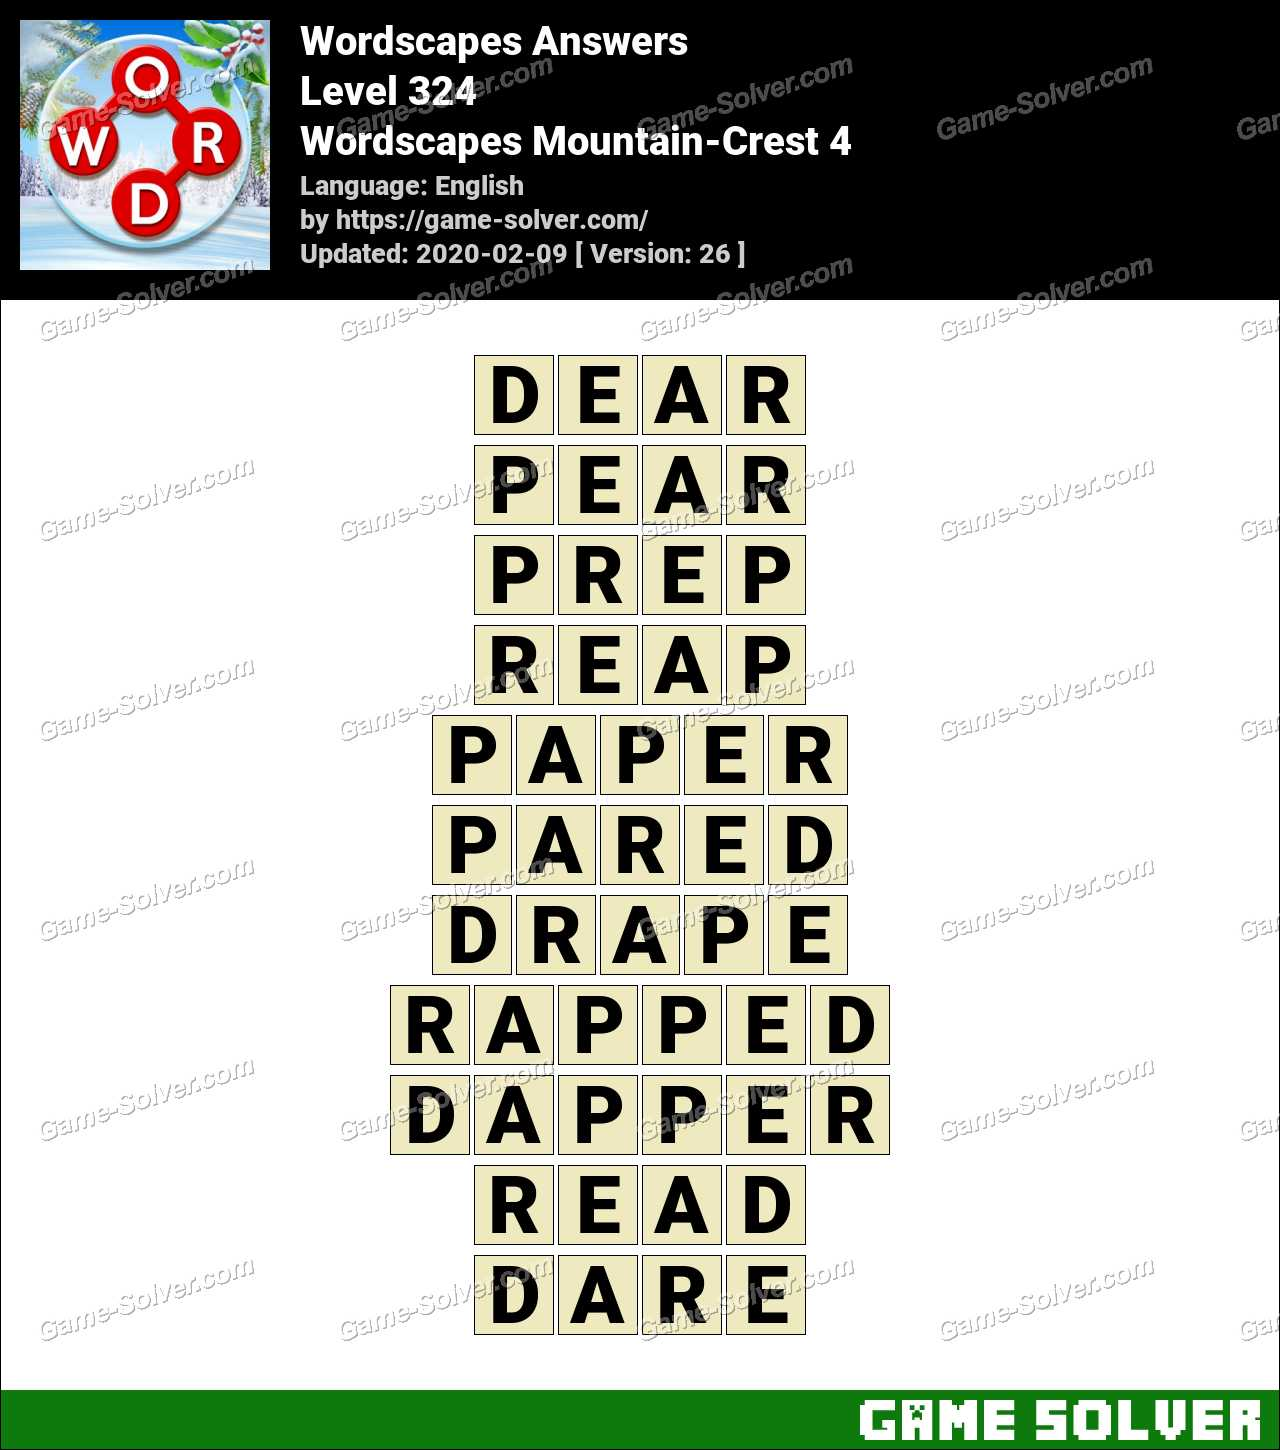 Wordscapes Mountain-Crest 4 Answers